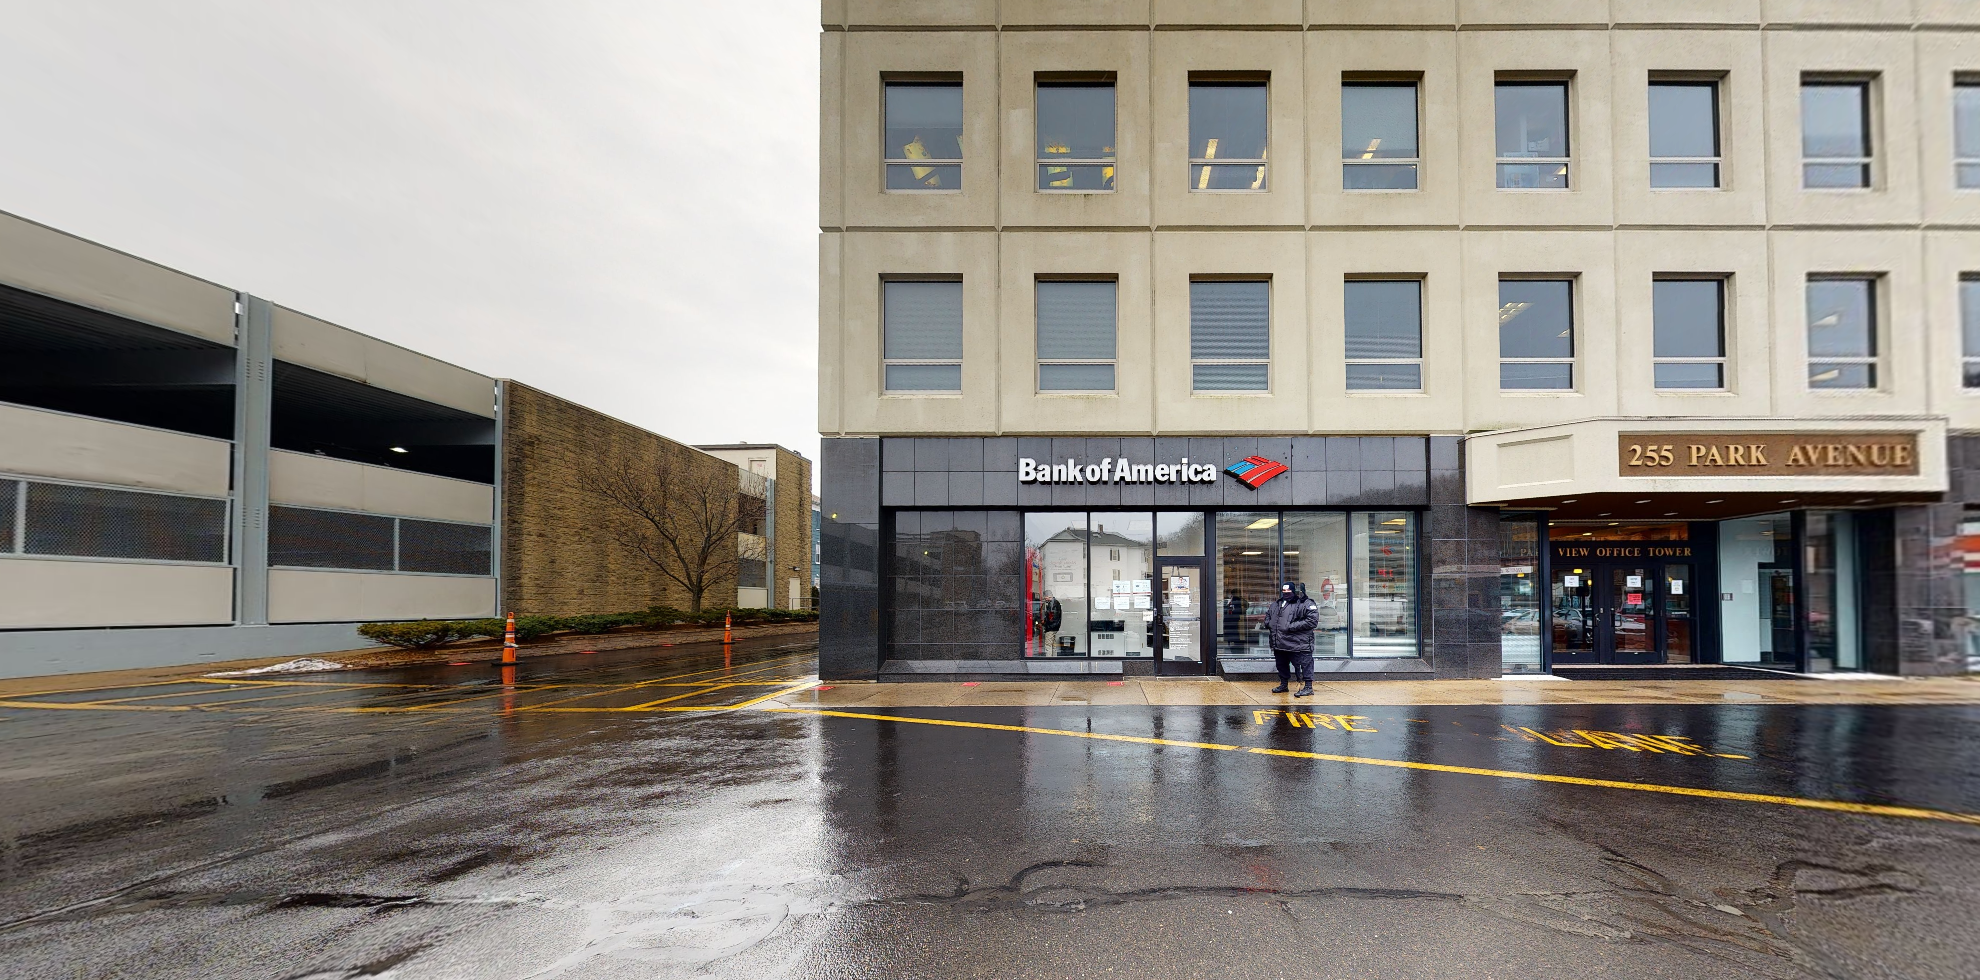 Bank of America financial center with drive-thru ATM | 255 Park Ave, Worcester, MA 01609